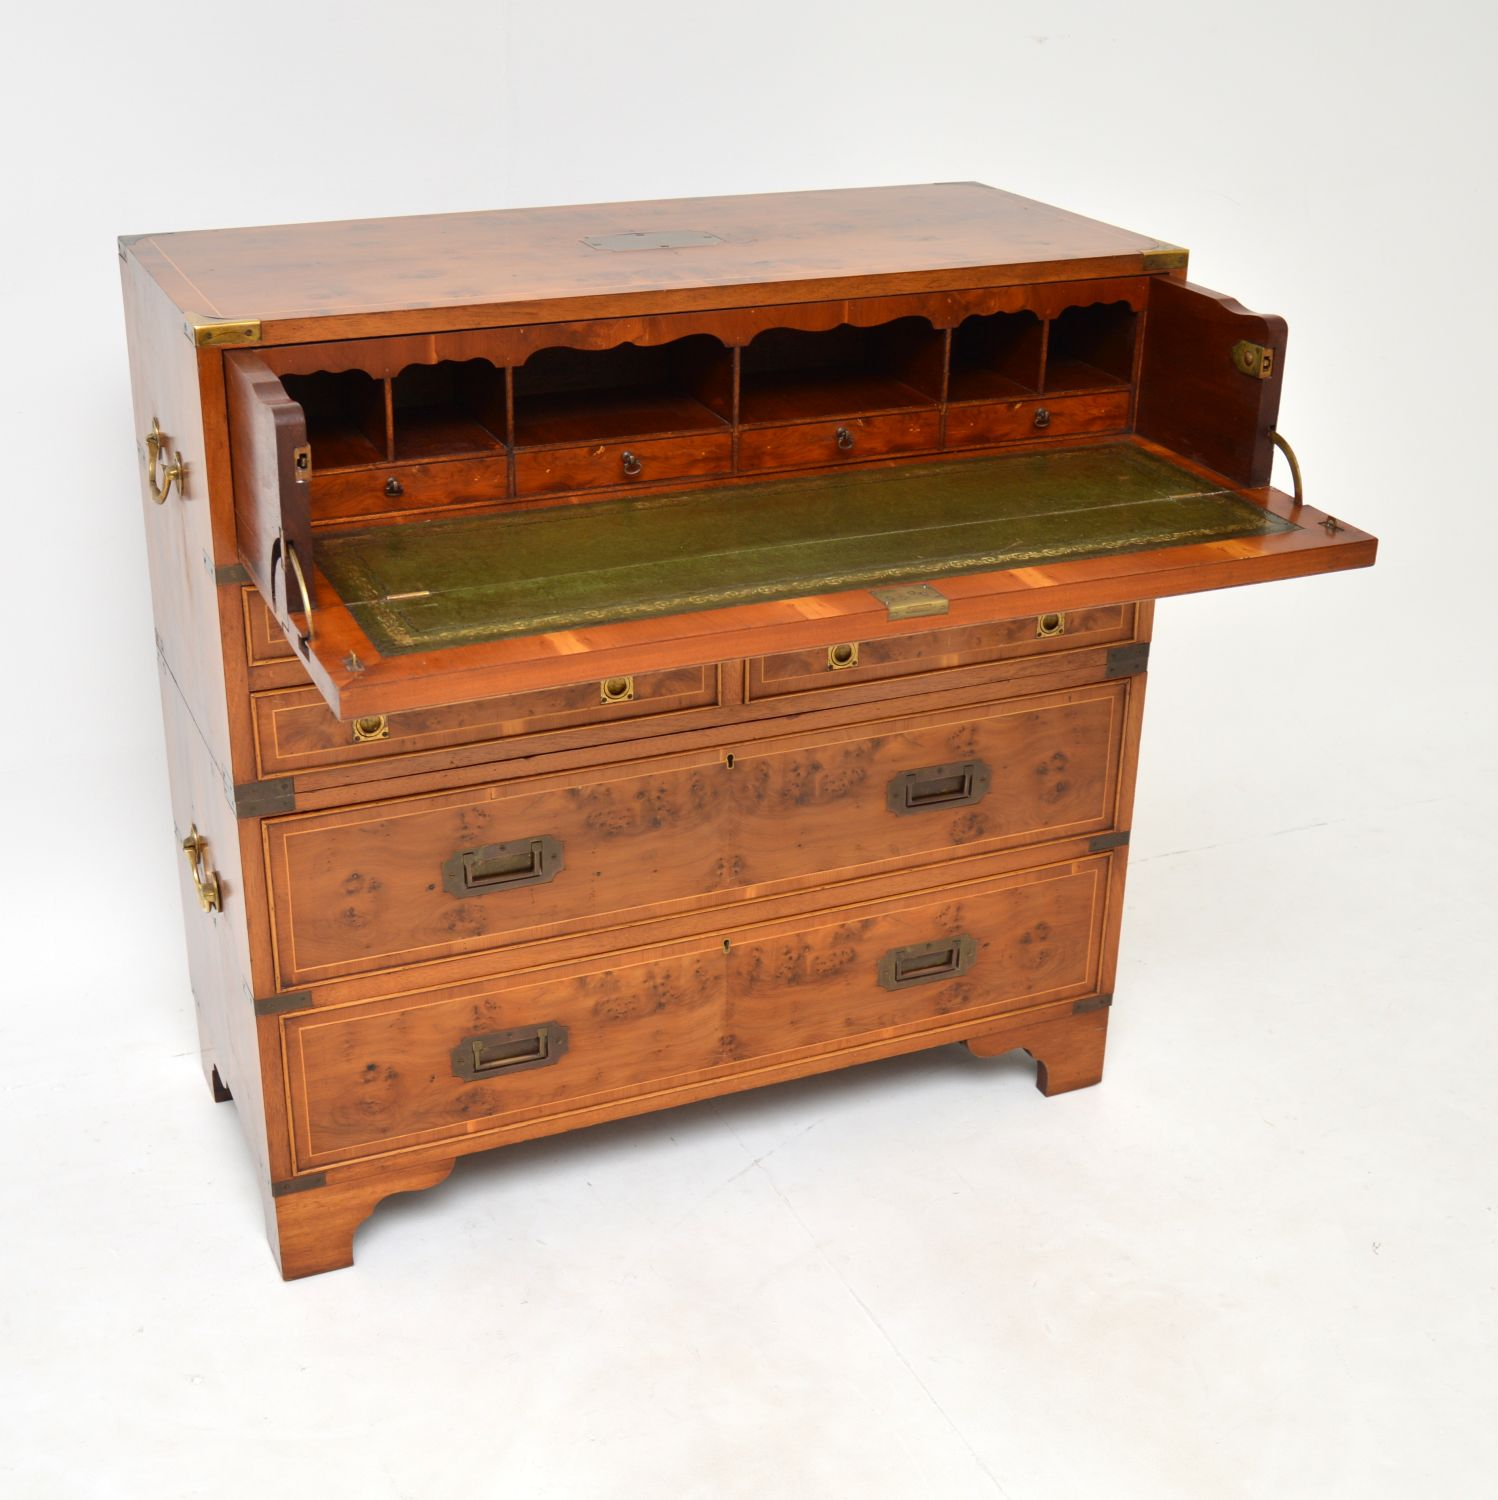 antique yew wood military campaign chest of drawers secretaire bureau